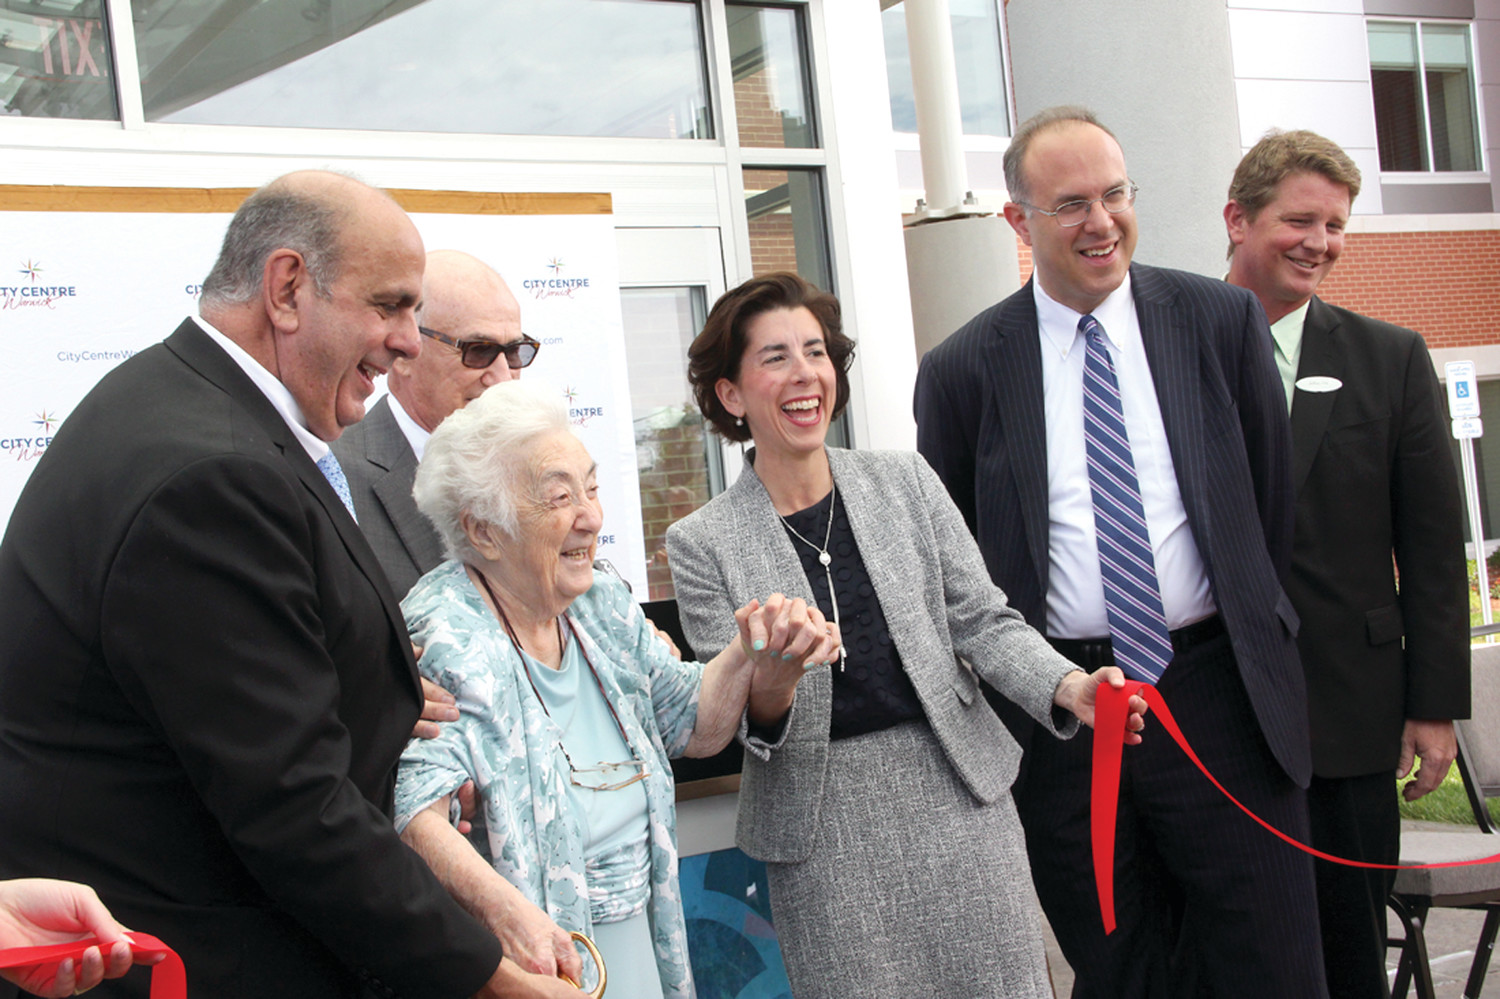 LEAVE IT TO MOM: Michael D'Ambra called on his mother, Sue, to wield the scissors and cut the ribbon held by Mayor Joseph Solomon and Gov. Gina Raimondo to open the Hyatt Place Hotel.